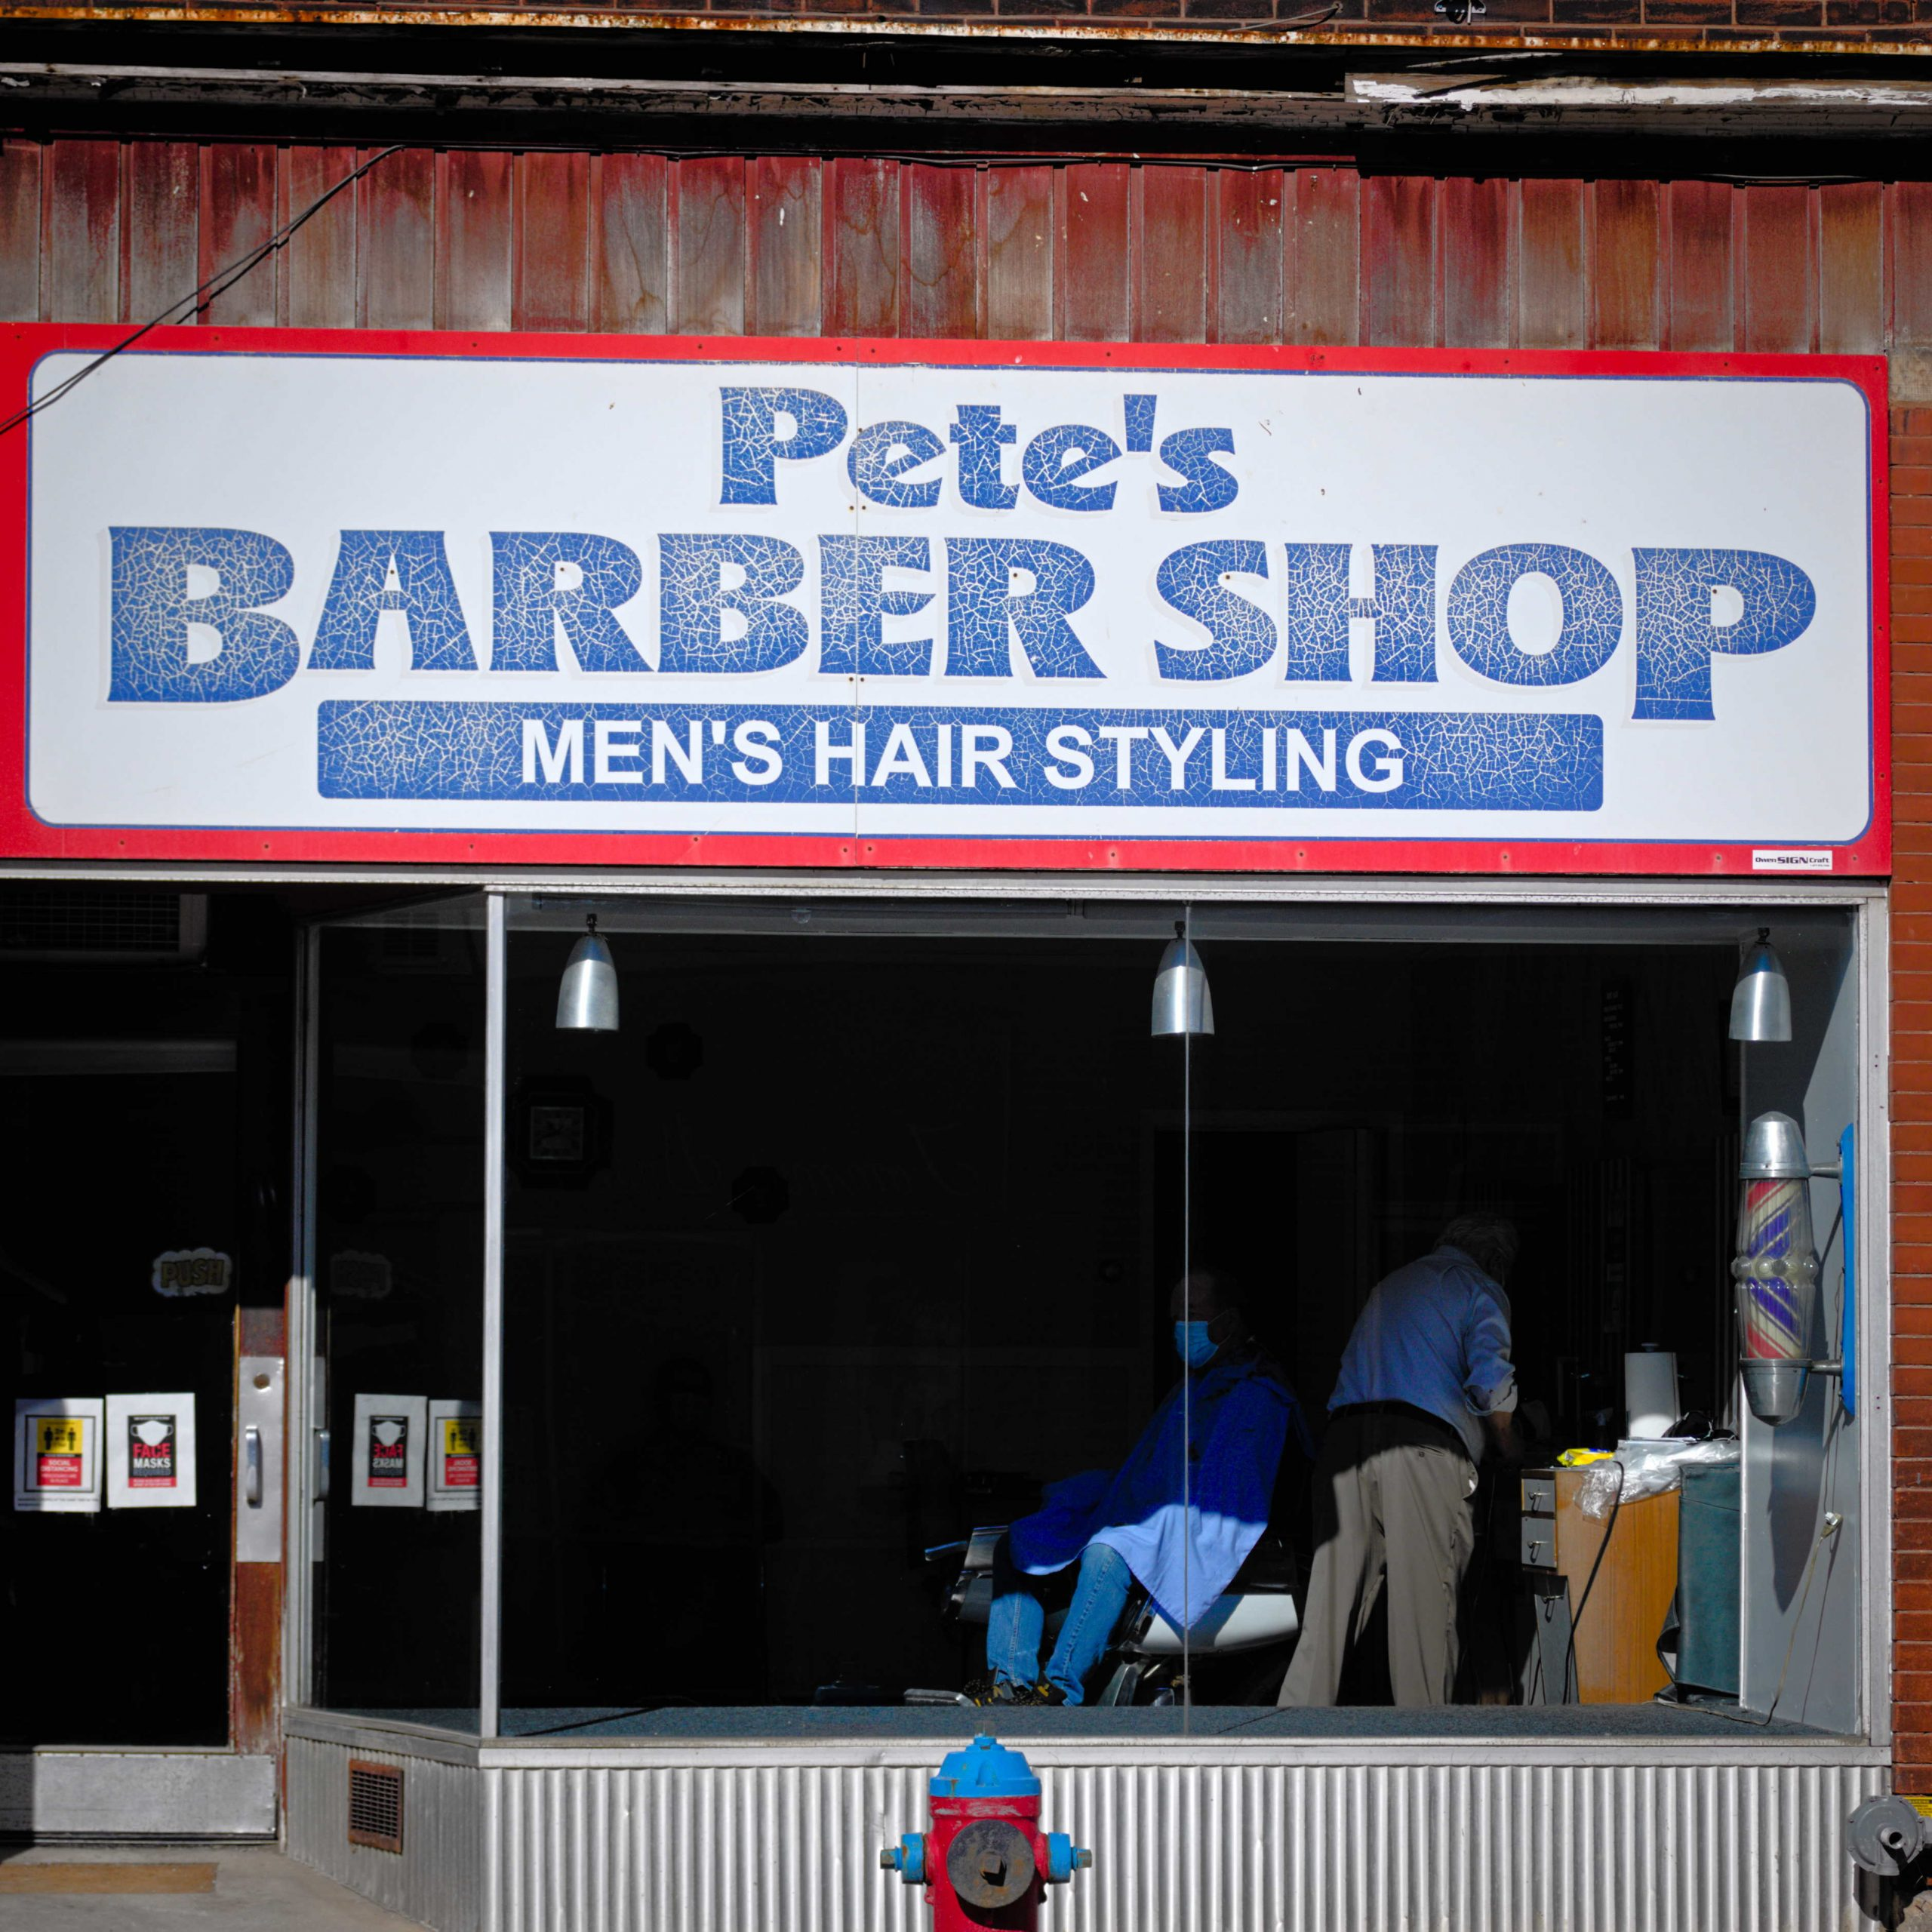 Pete's Barber & Hairstyling